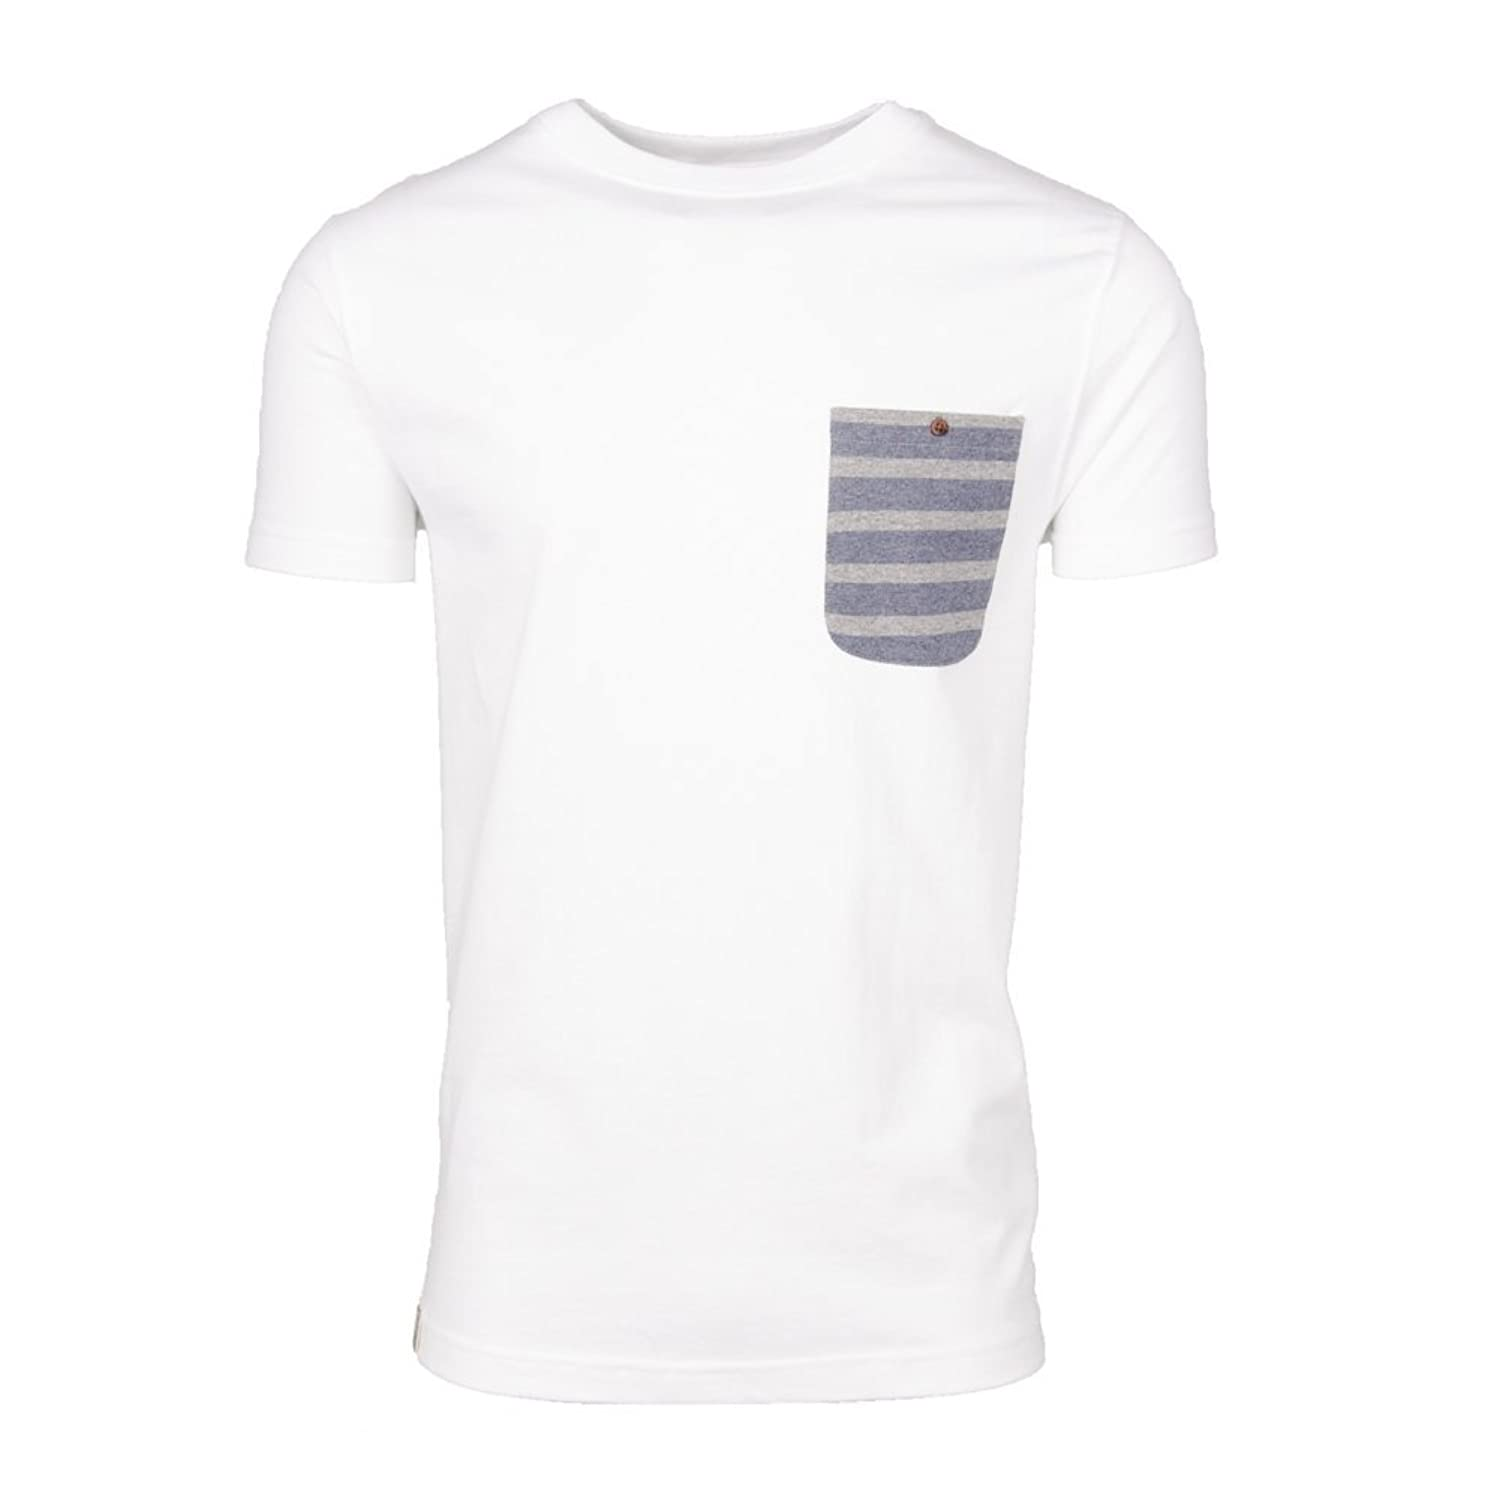 Wemoto Blake T-Shirt in White Heather  цена и фото